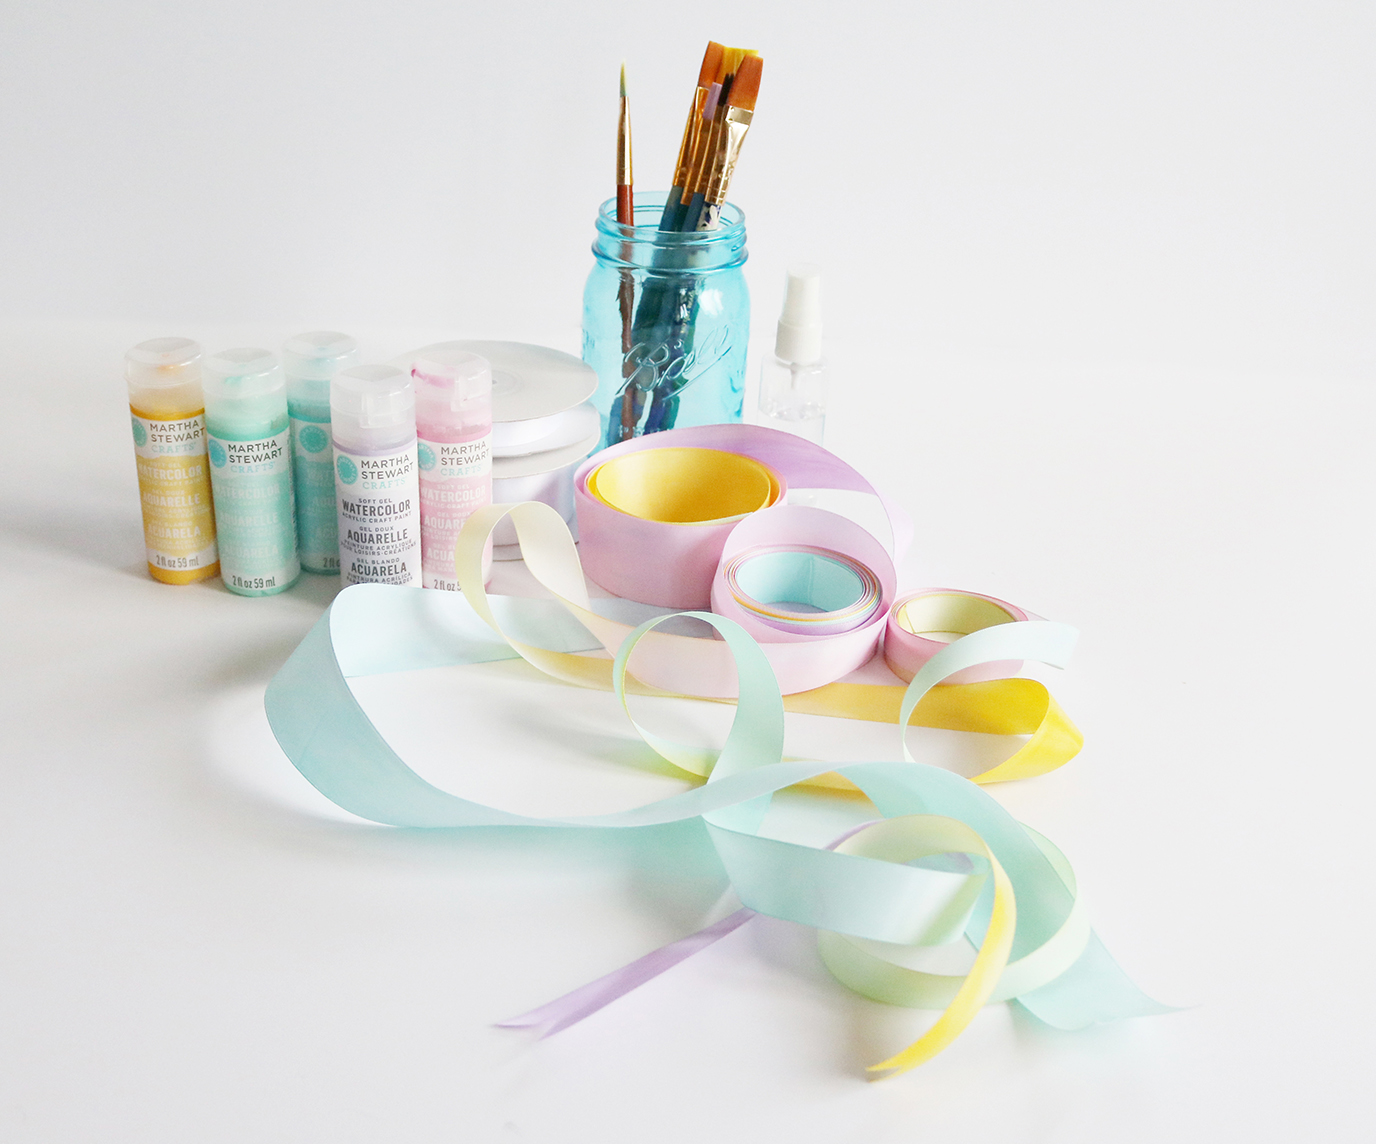 diy watercolour ribbon tutorial | Lorrie Everitt Studio